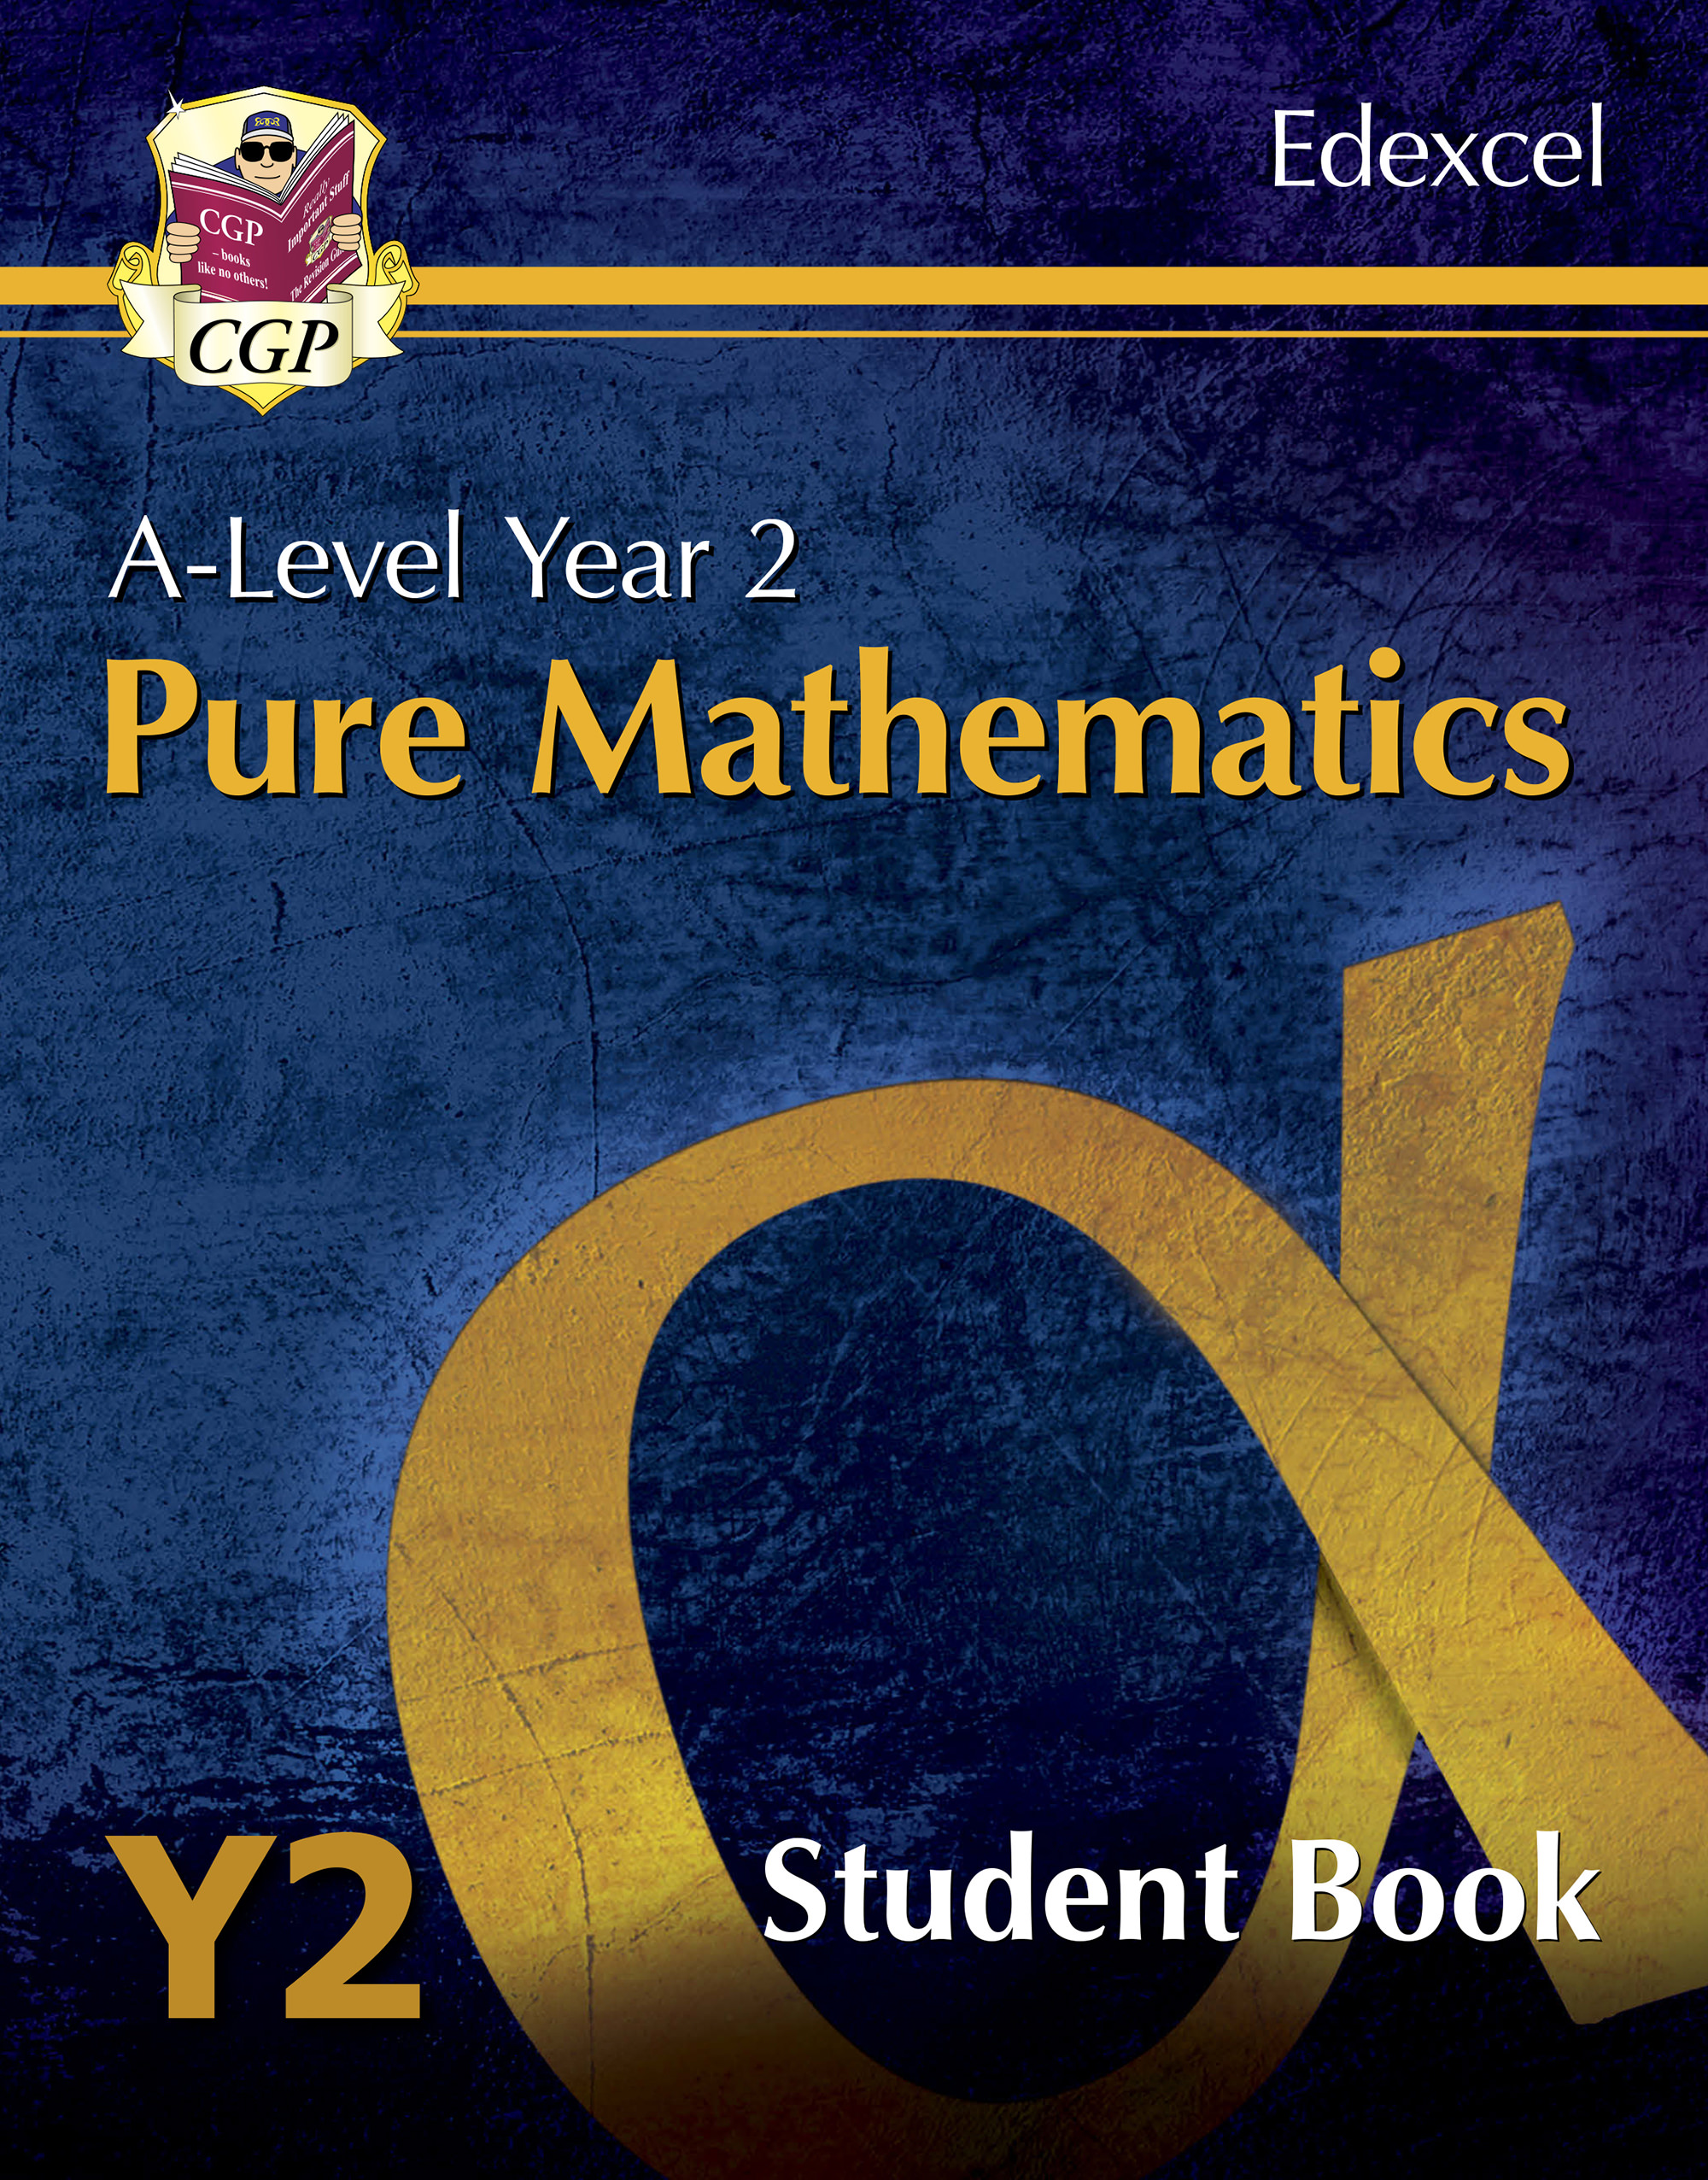 MEPMT61D - New A-Level Maths for Edexcel: Pure Mathematics - Year 2 Student Book Online Edition